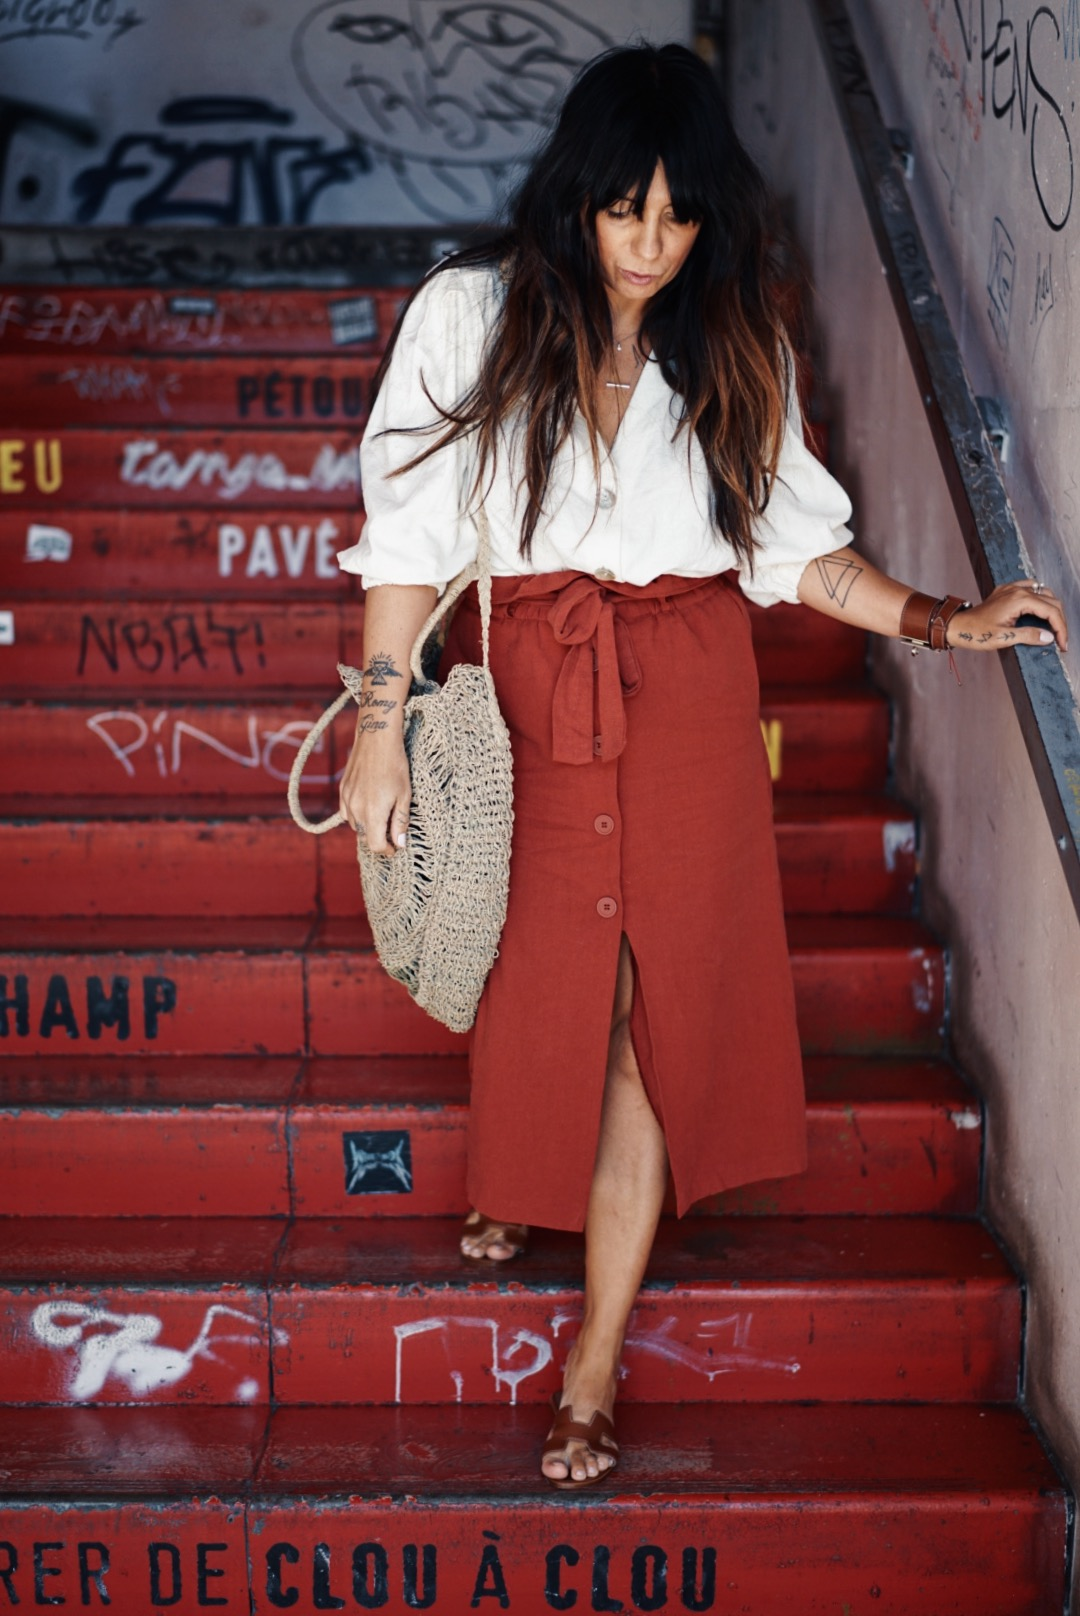 dorisknowsfashion blog mode look frange